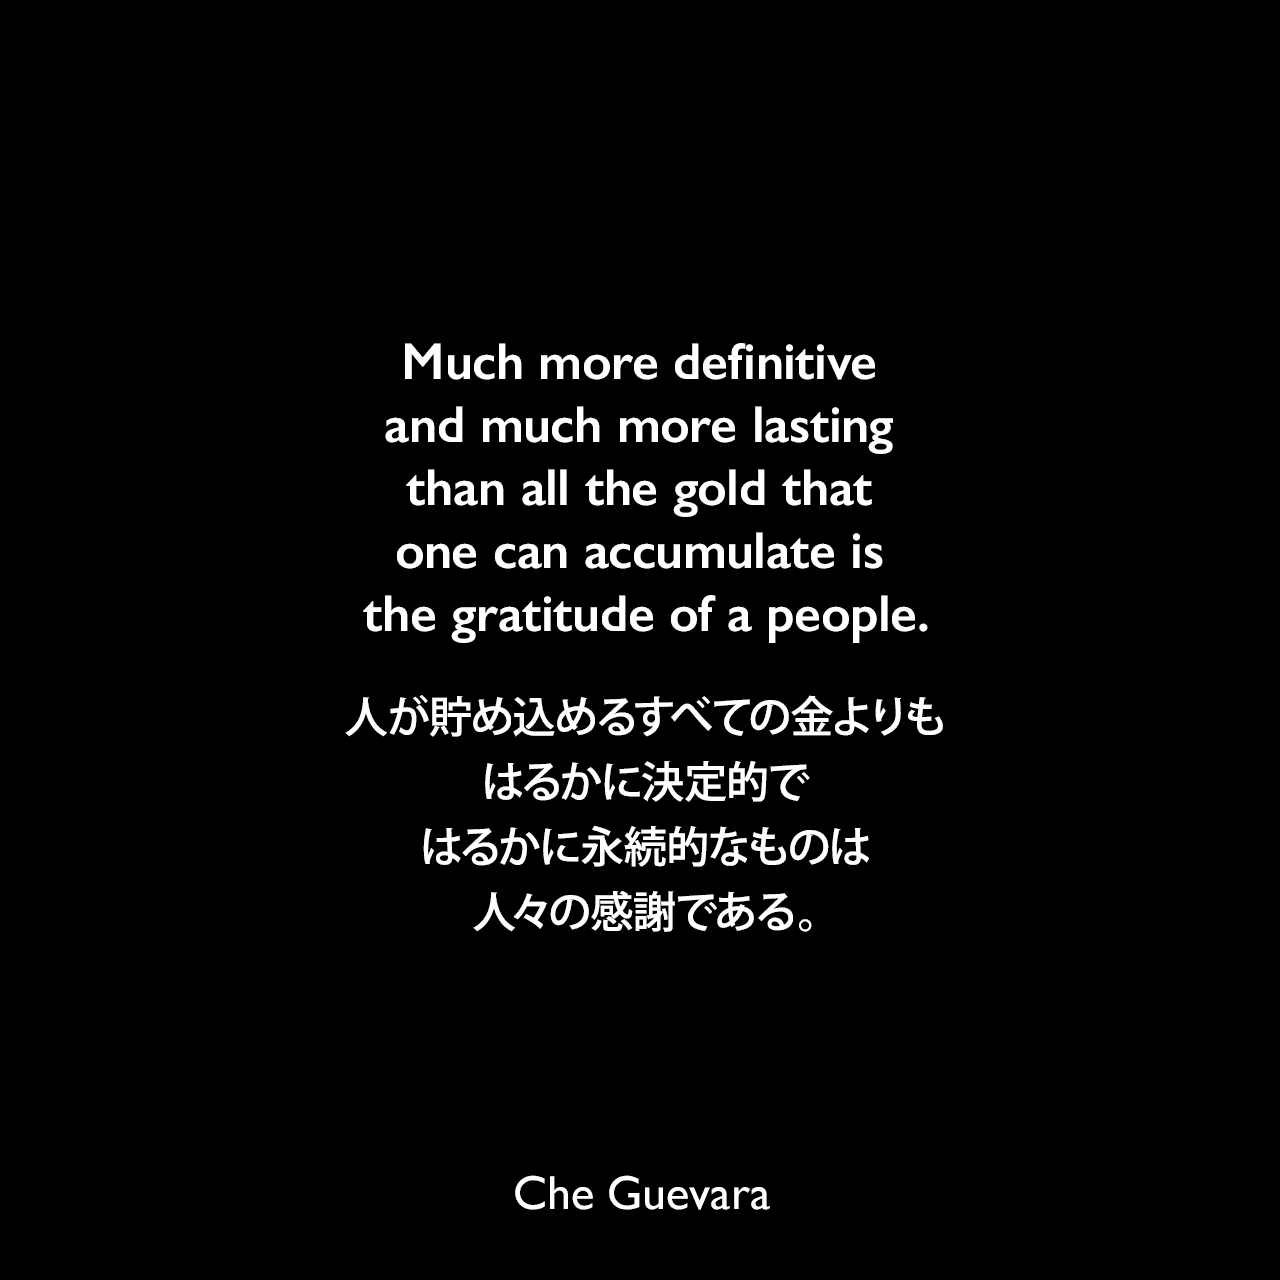 Much more definitive and much more lasting than all the gold that one can accumulate is the gratitude of a people.人が貯め込めるすべての金よりもはるかに決定的ではるかに永続的なものは人々の感謝である。- 1960年8月16日キューバの民兵に送られたゲバラのスピーチ「On Revolutionary Medicine」よりChe Guevara